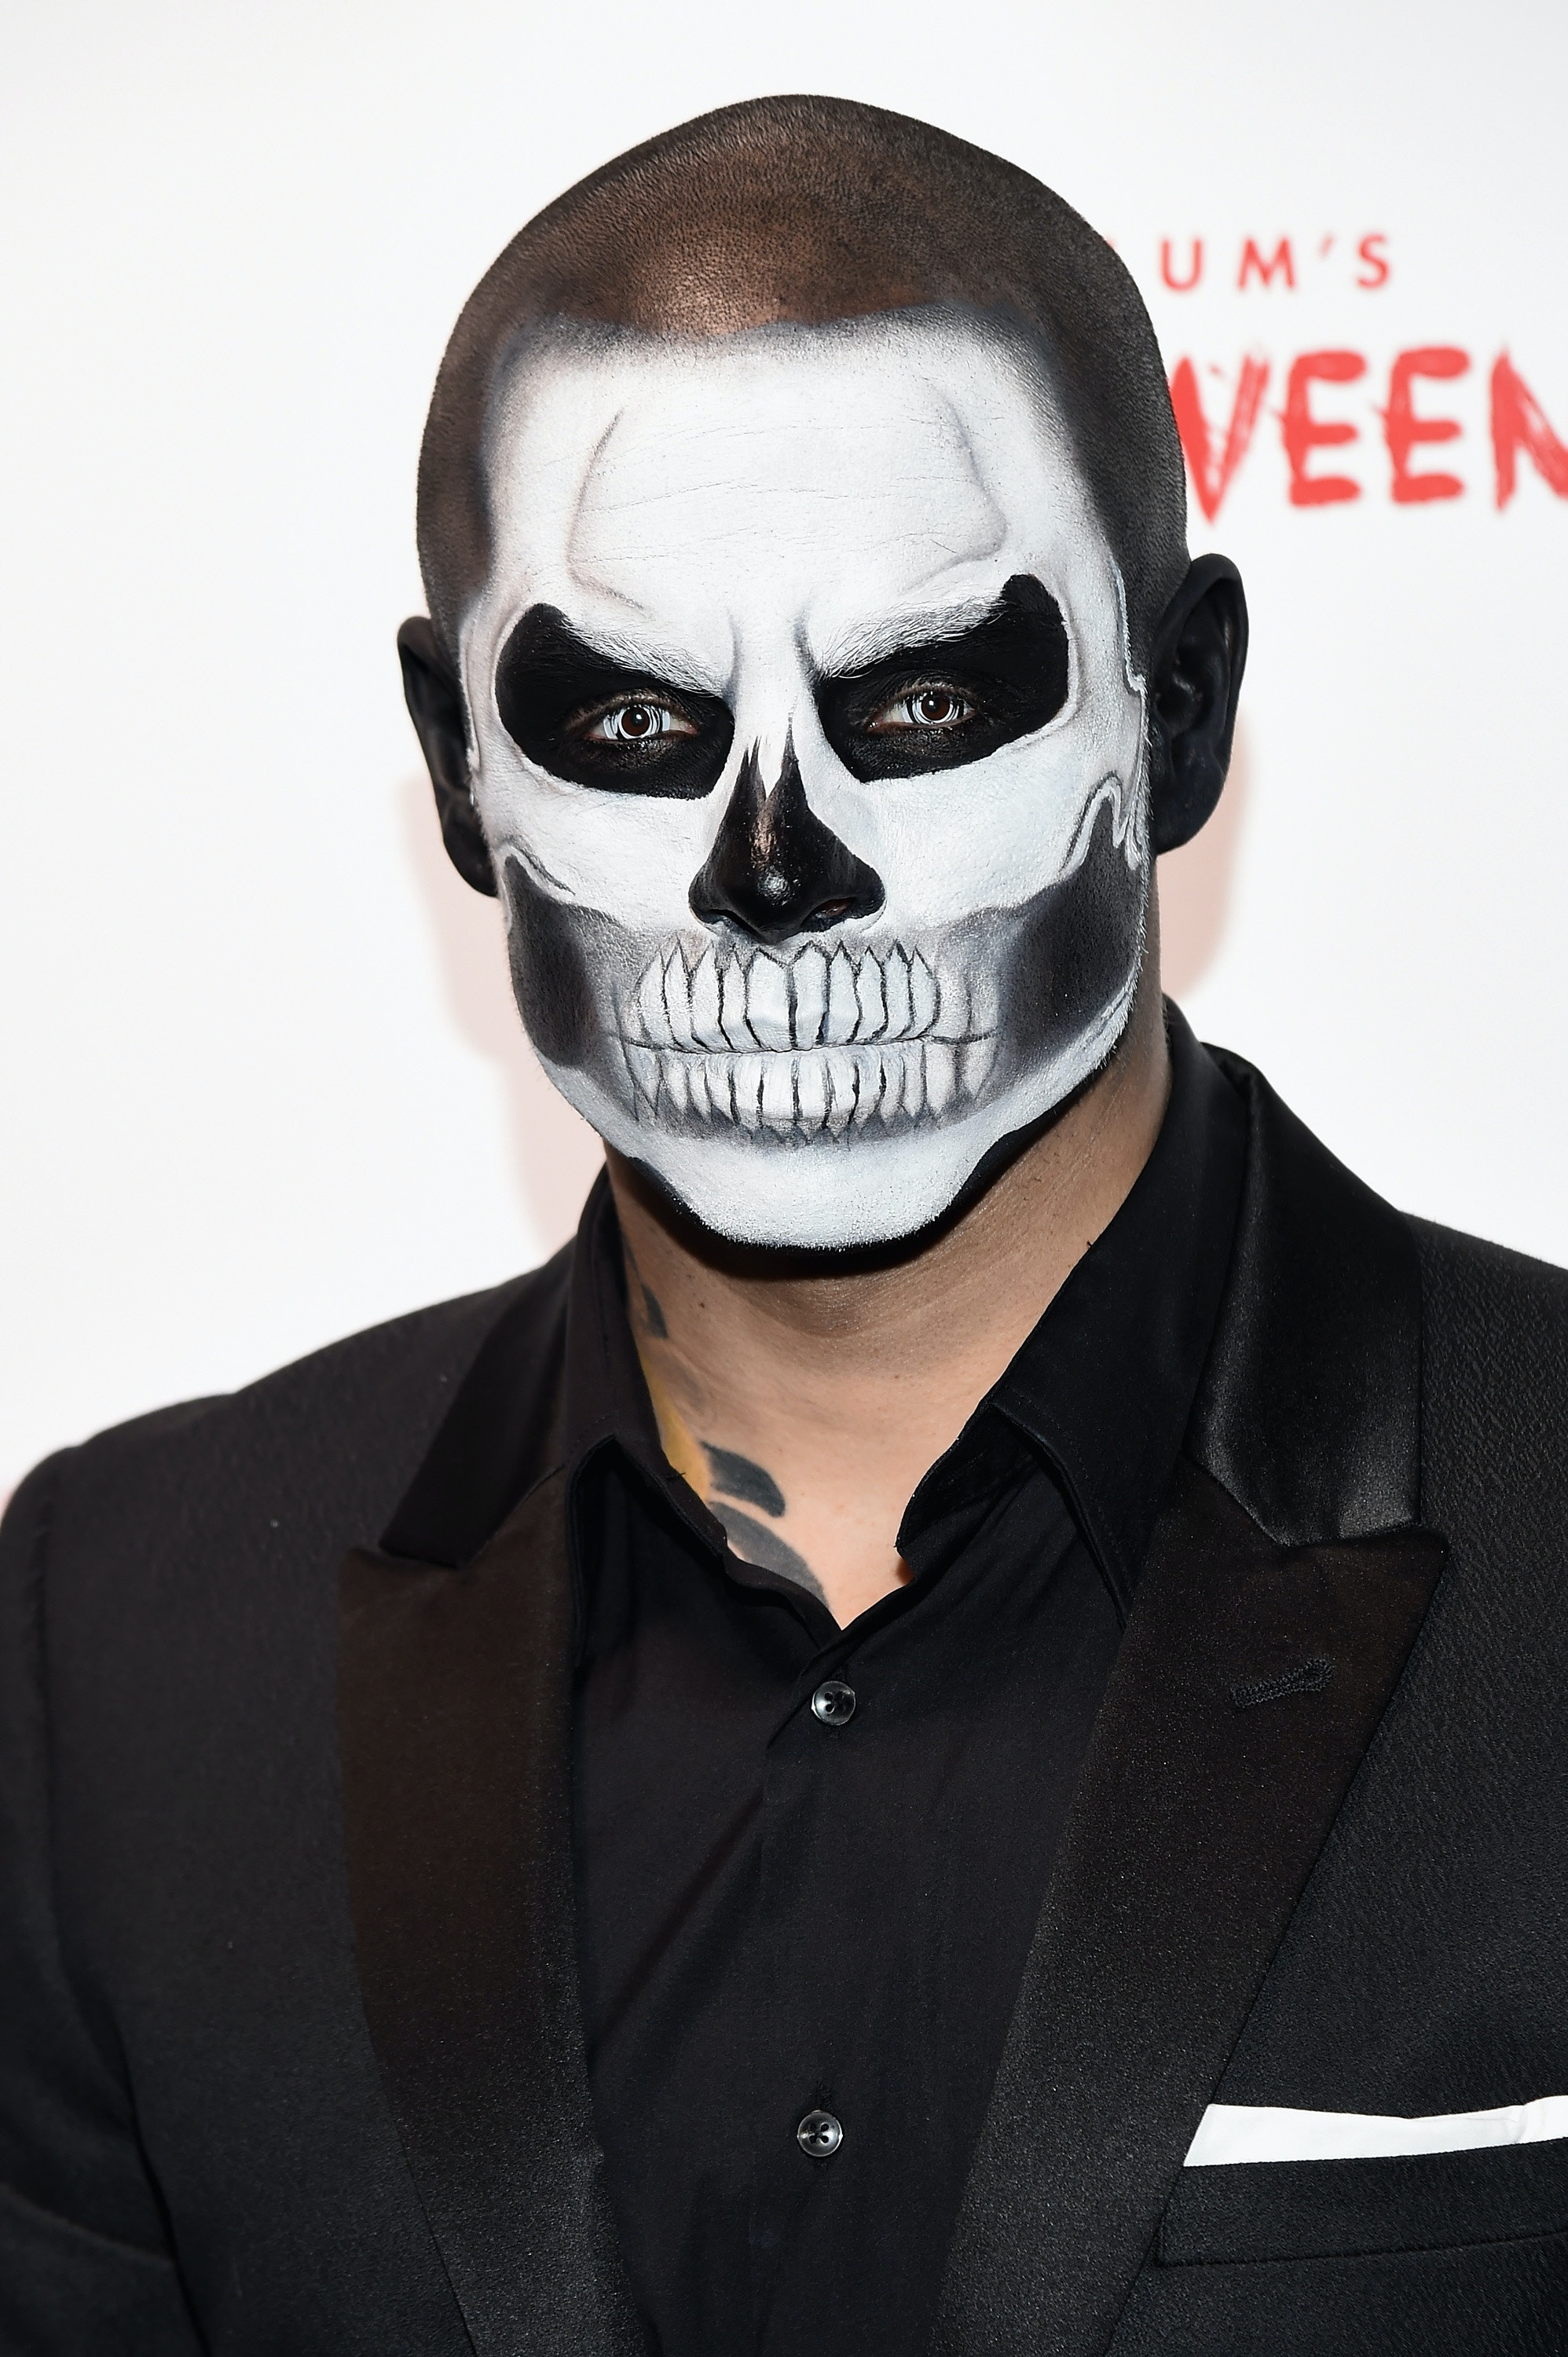 The Best Halloween Costumes Of 2015 Show That The Most Creative ...